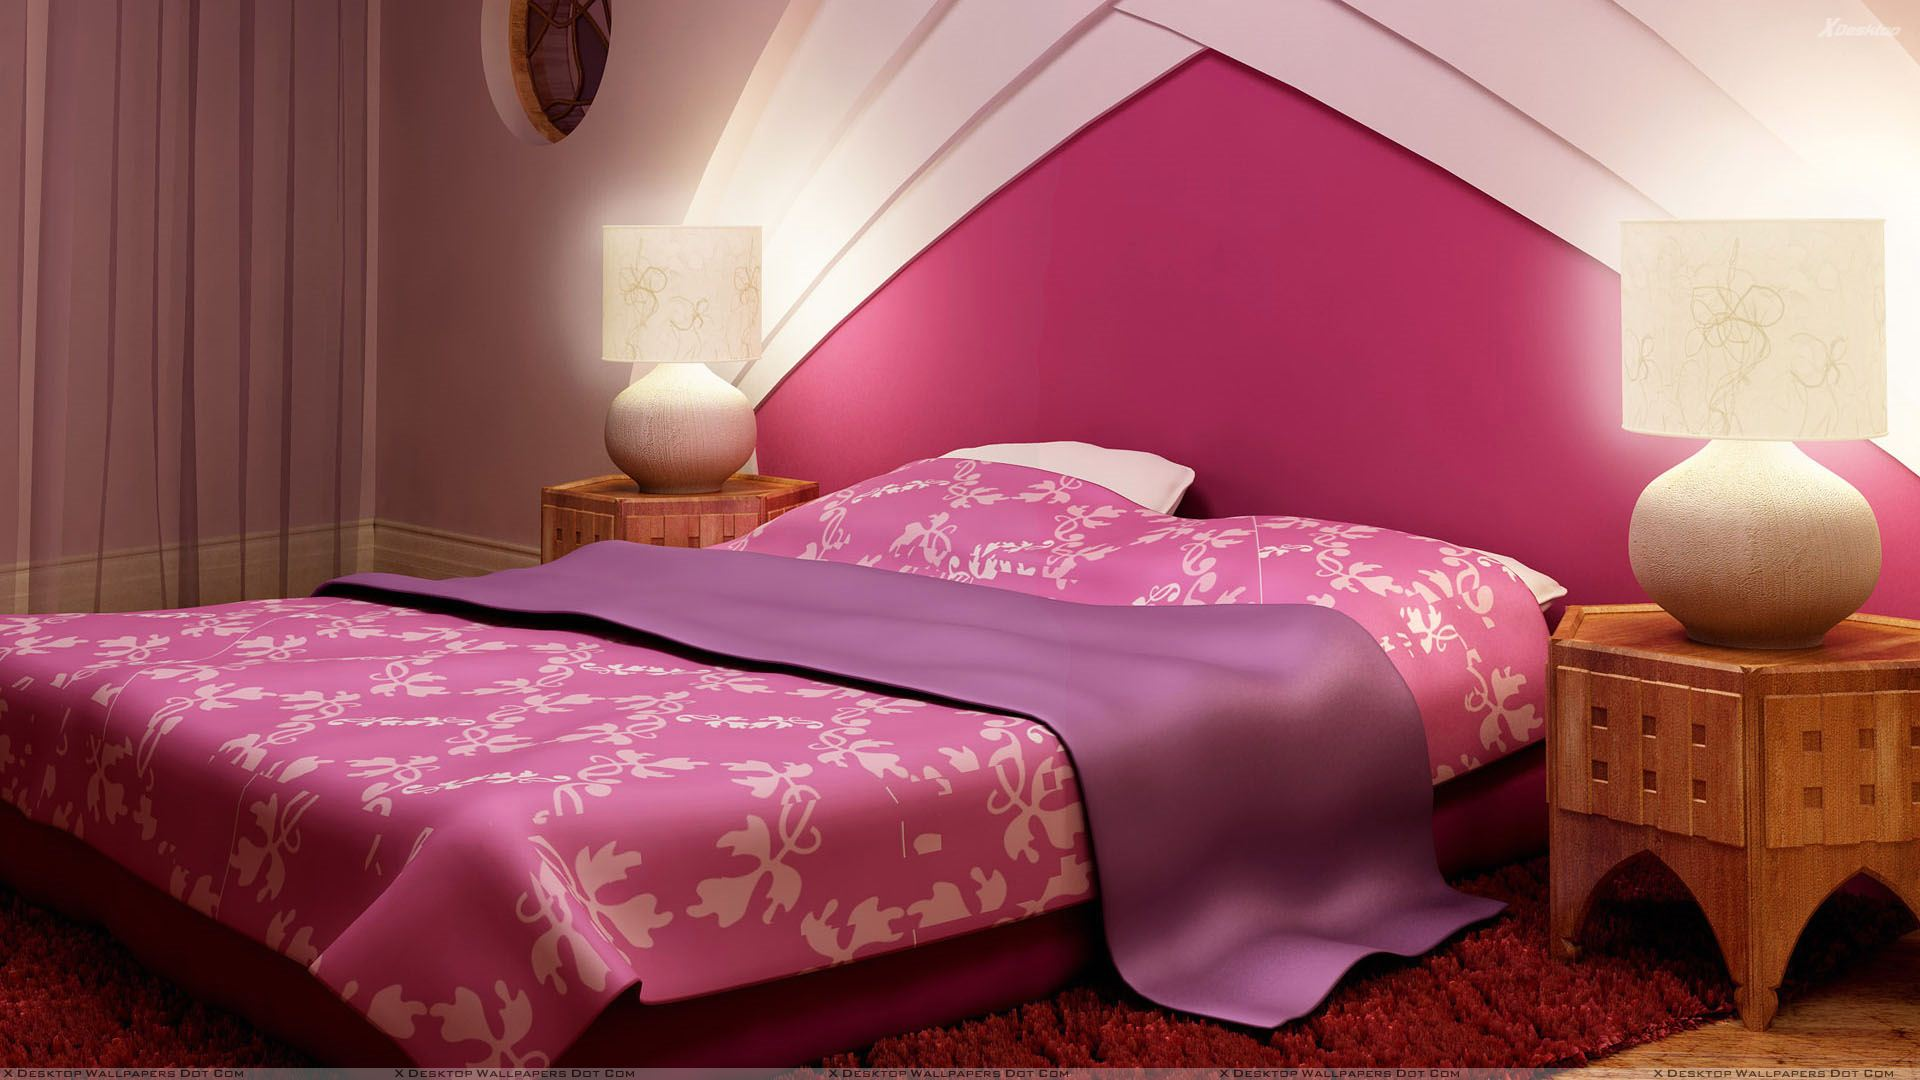 Pink Background And Pink Bed In Bedroom Wallpaper